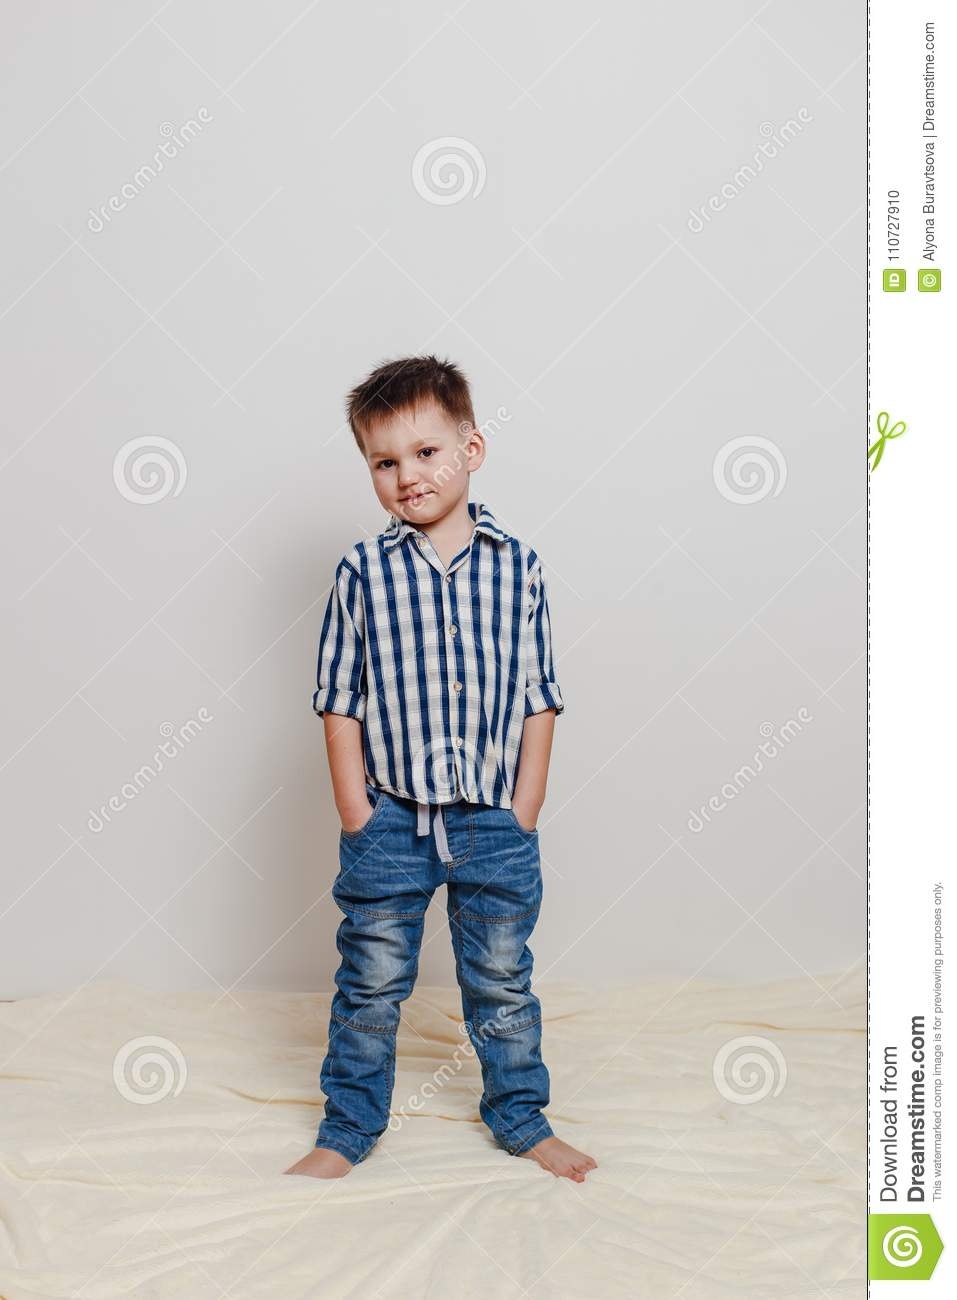 4 Year Boy Bedroom Decorating Ideas: Portrait Of A Four-year-old Boy In A Shirt And Blue Jeans